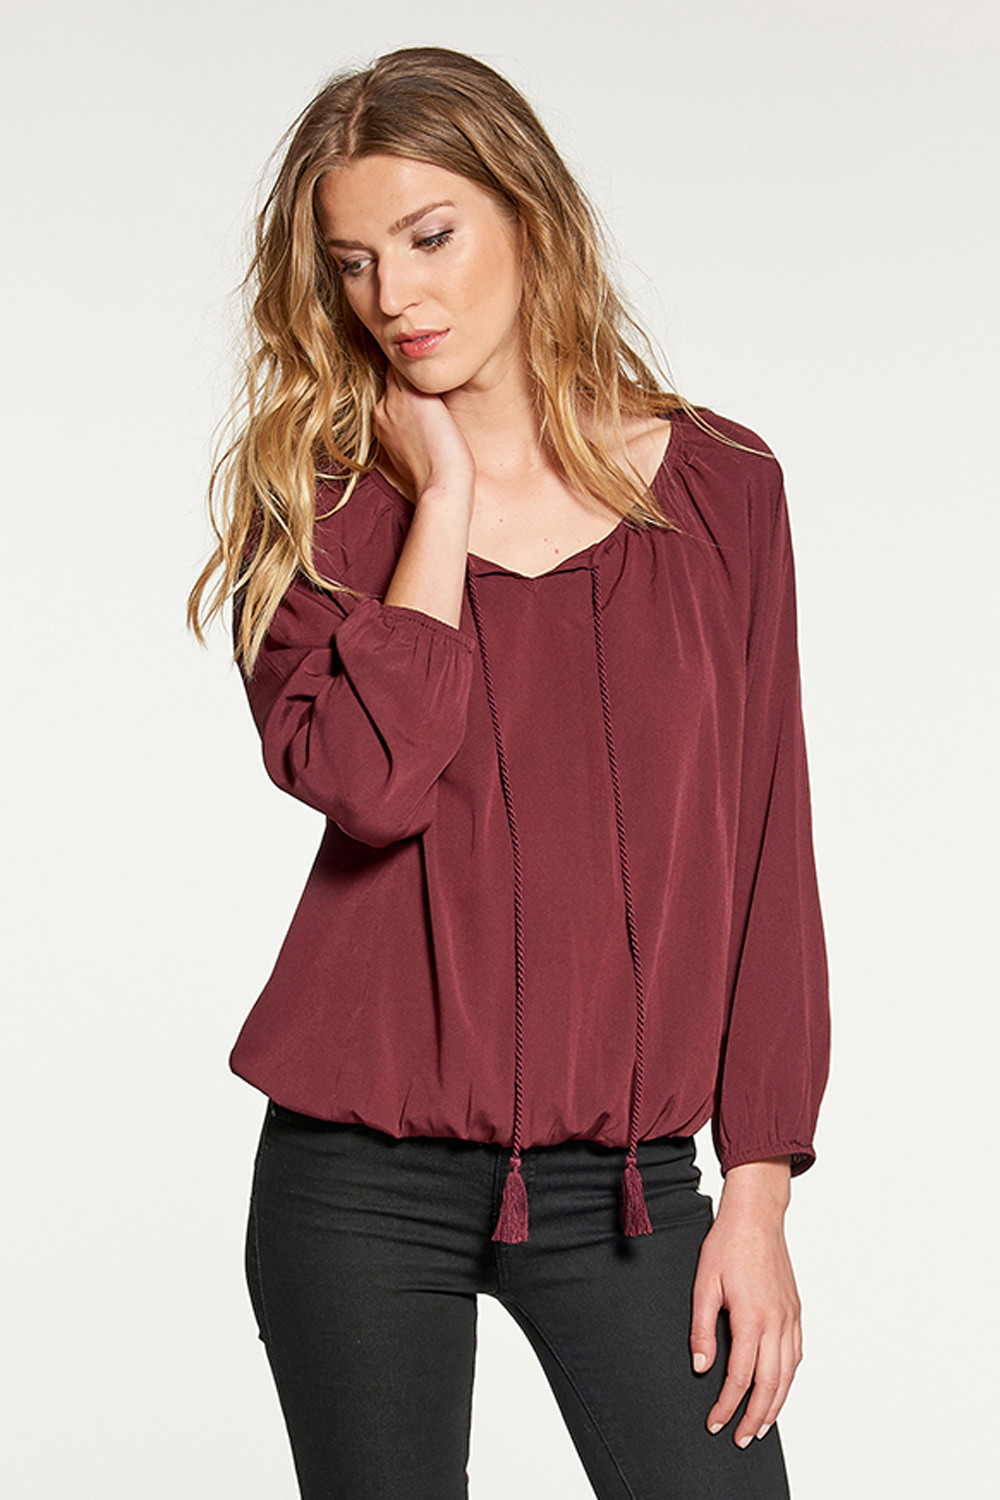 Blouse LUPITA - Couleur - Dark Red, Taille - XS